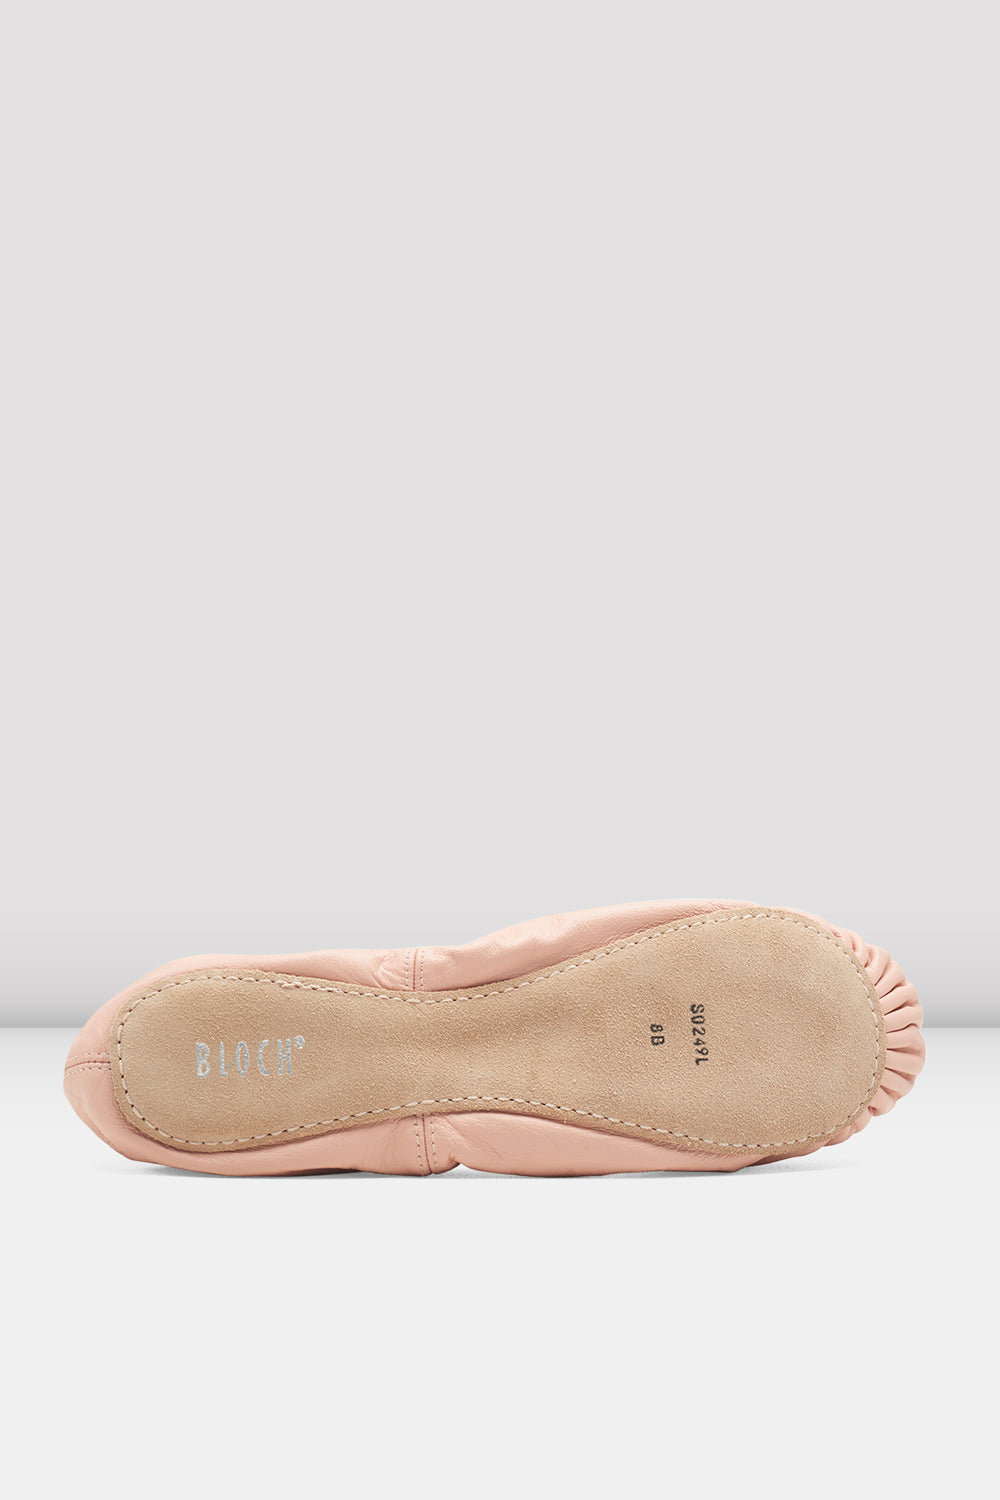 Girls Giselle Leather Ballet Shoes - BLOCH US